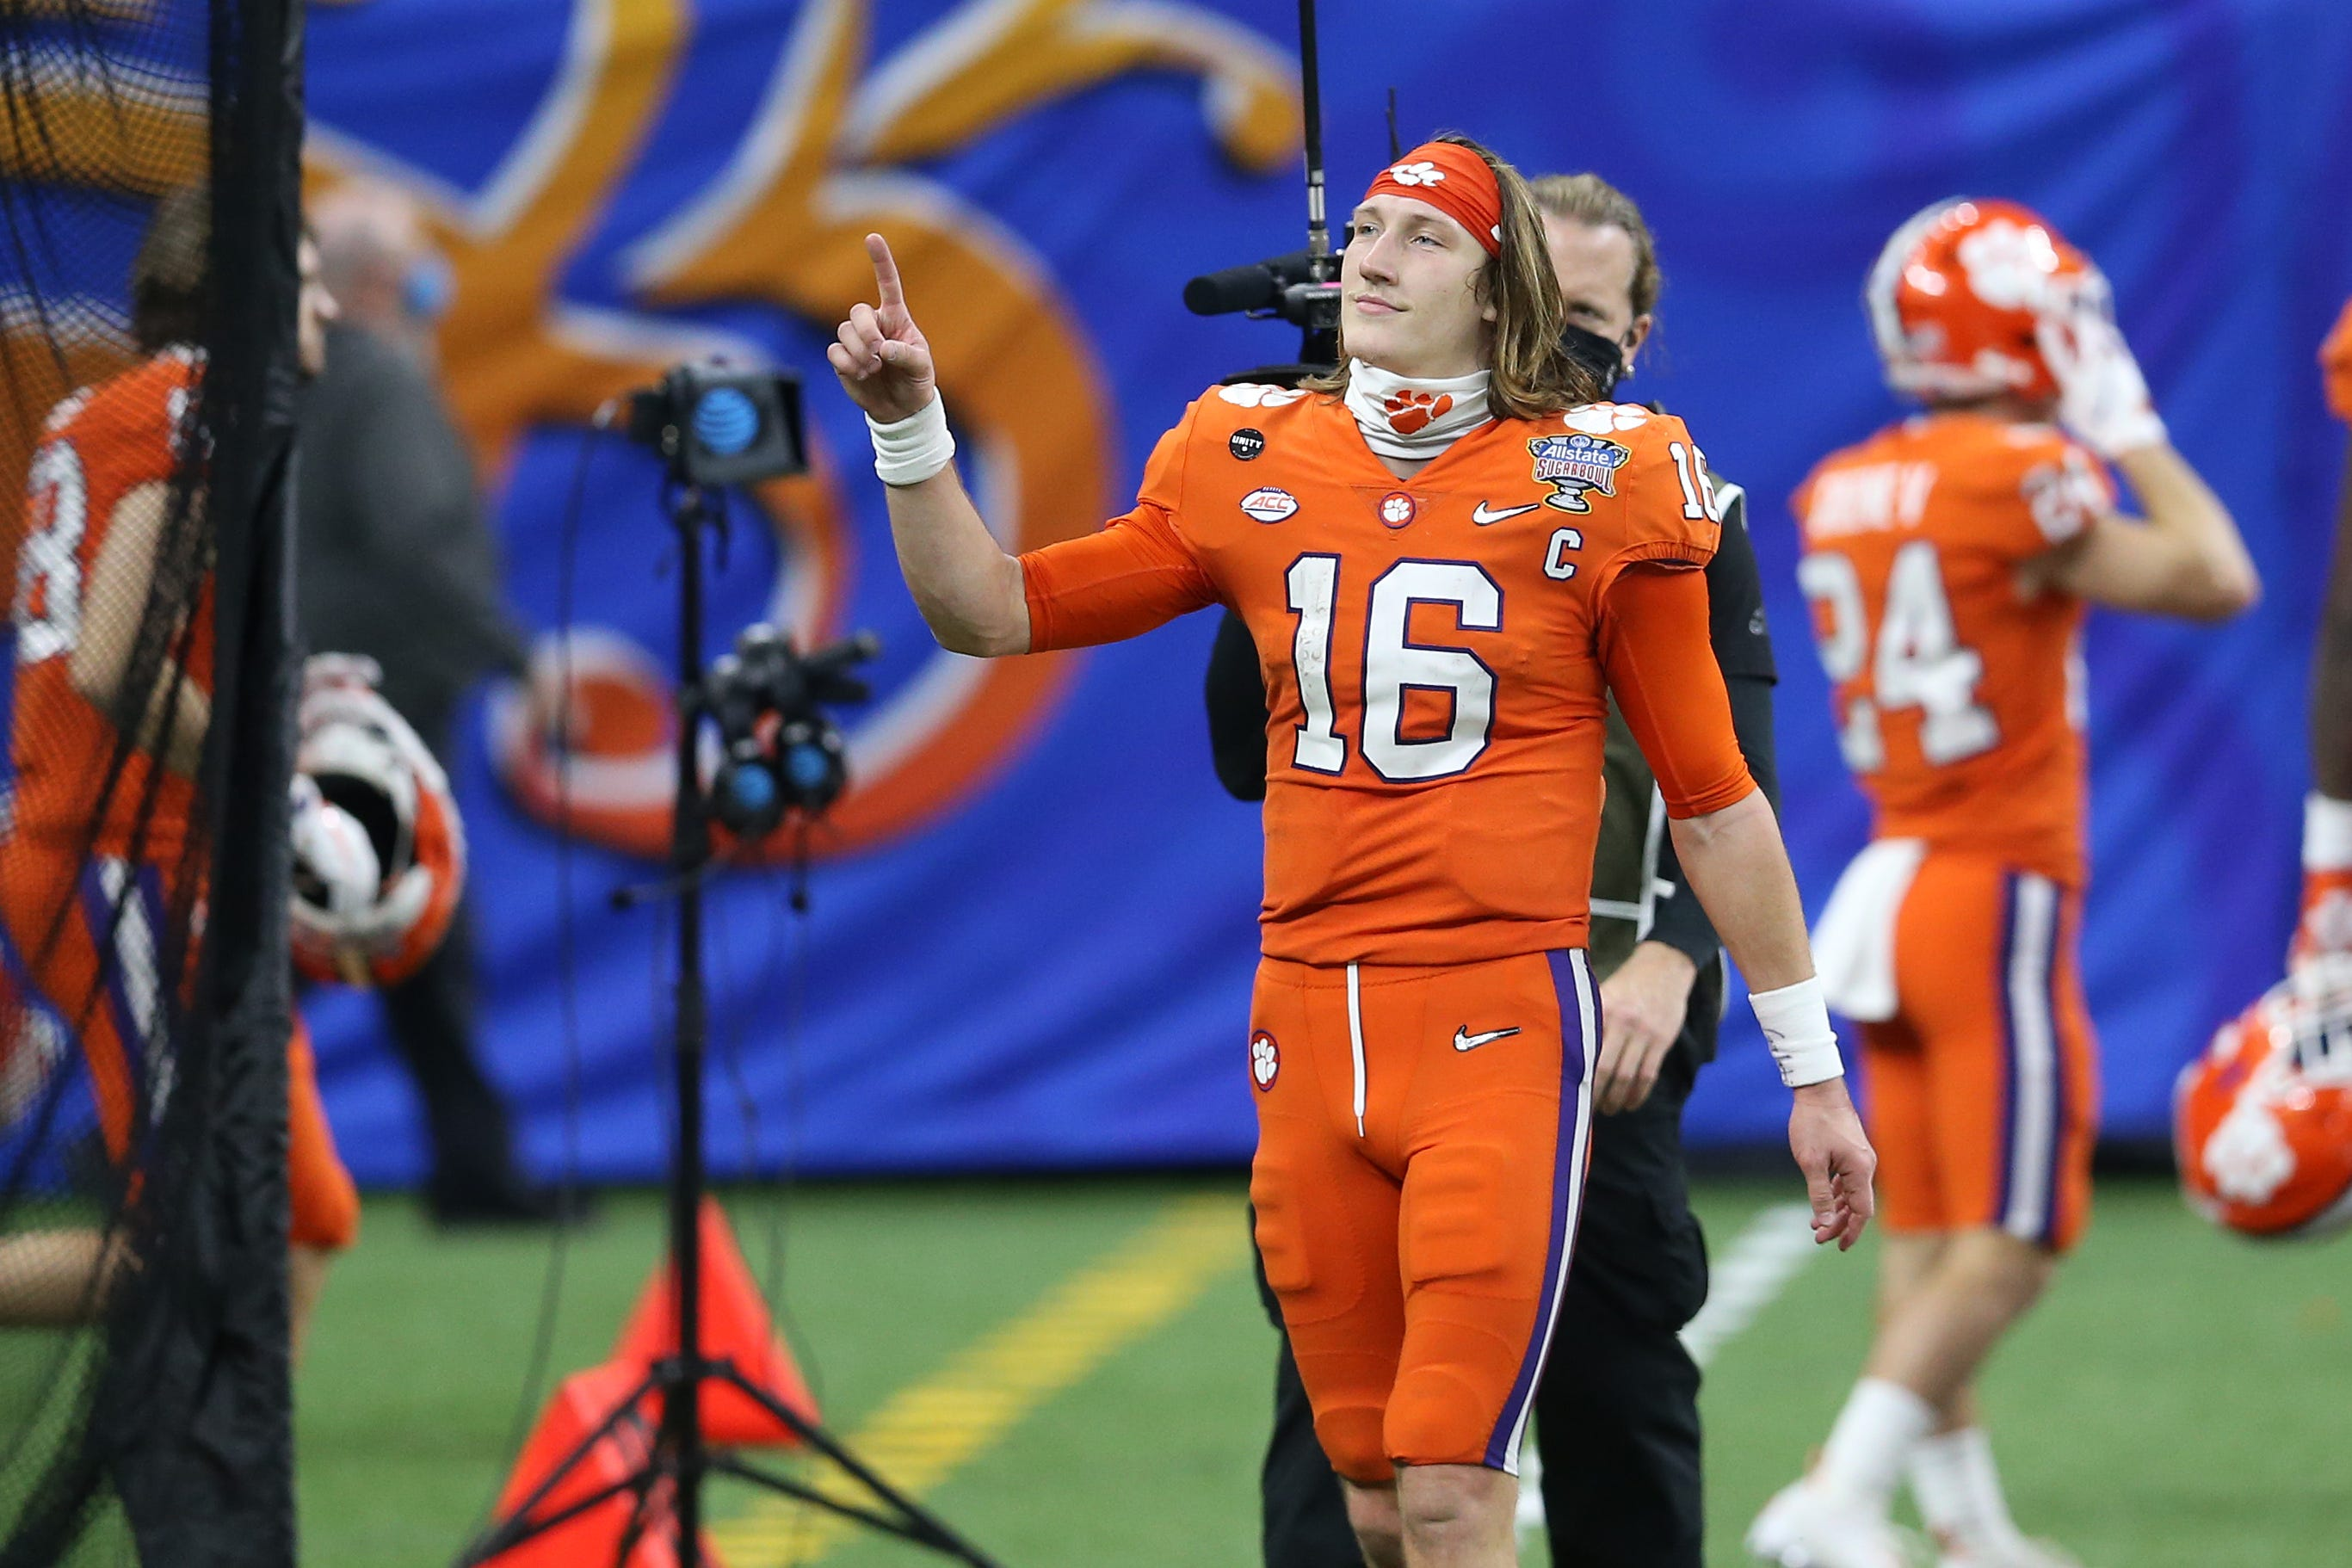 Trevor Lawrence selected by Jacksonville Jaguars with top pick in 2021 NFL draft